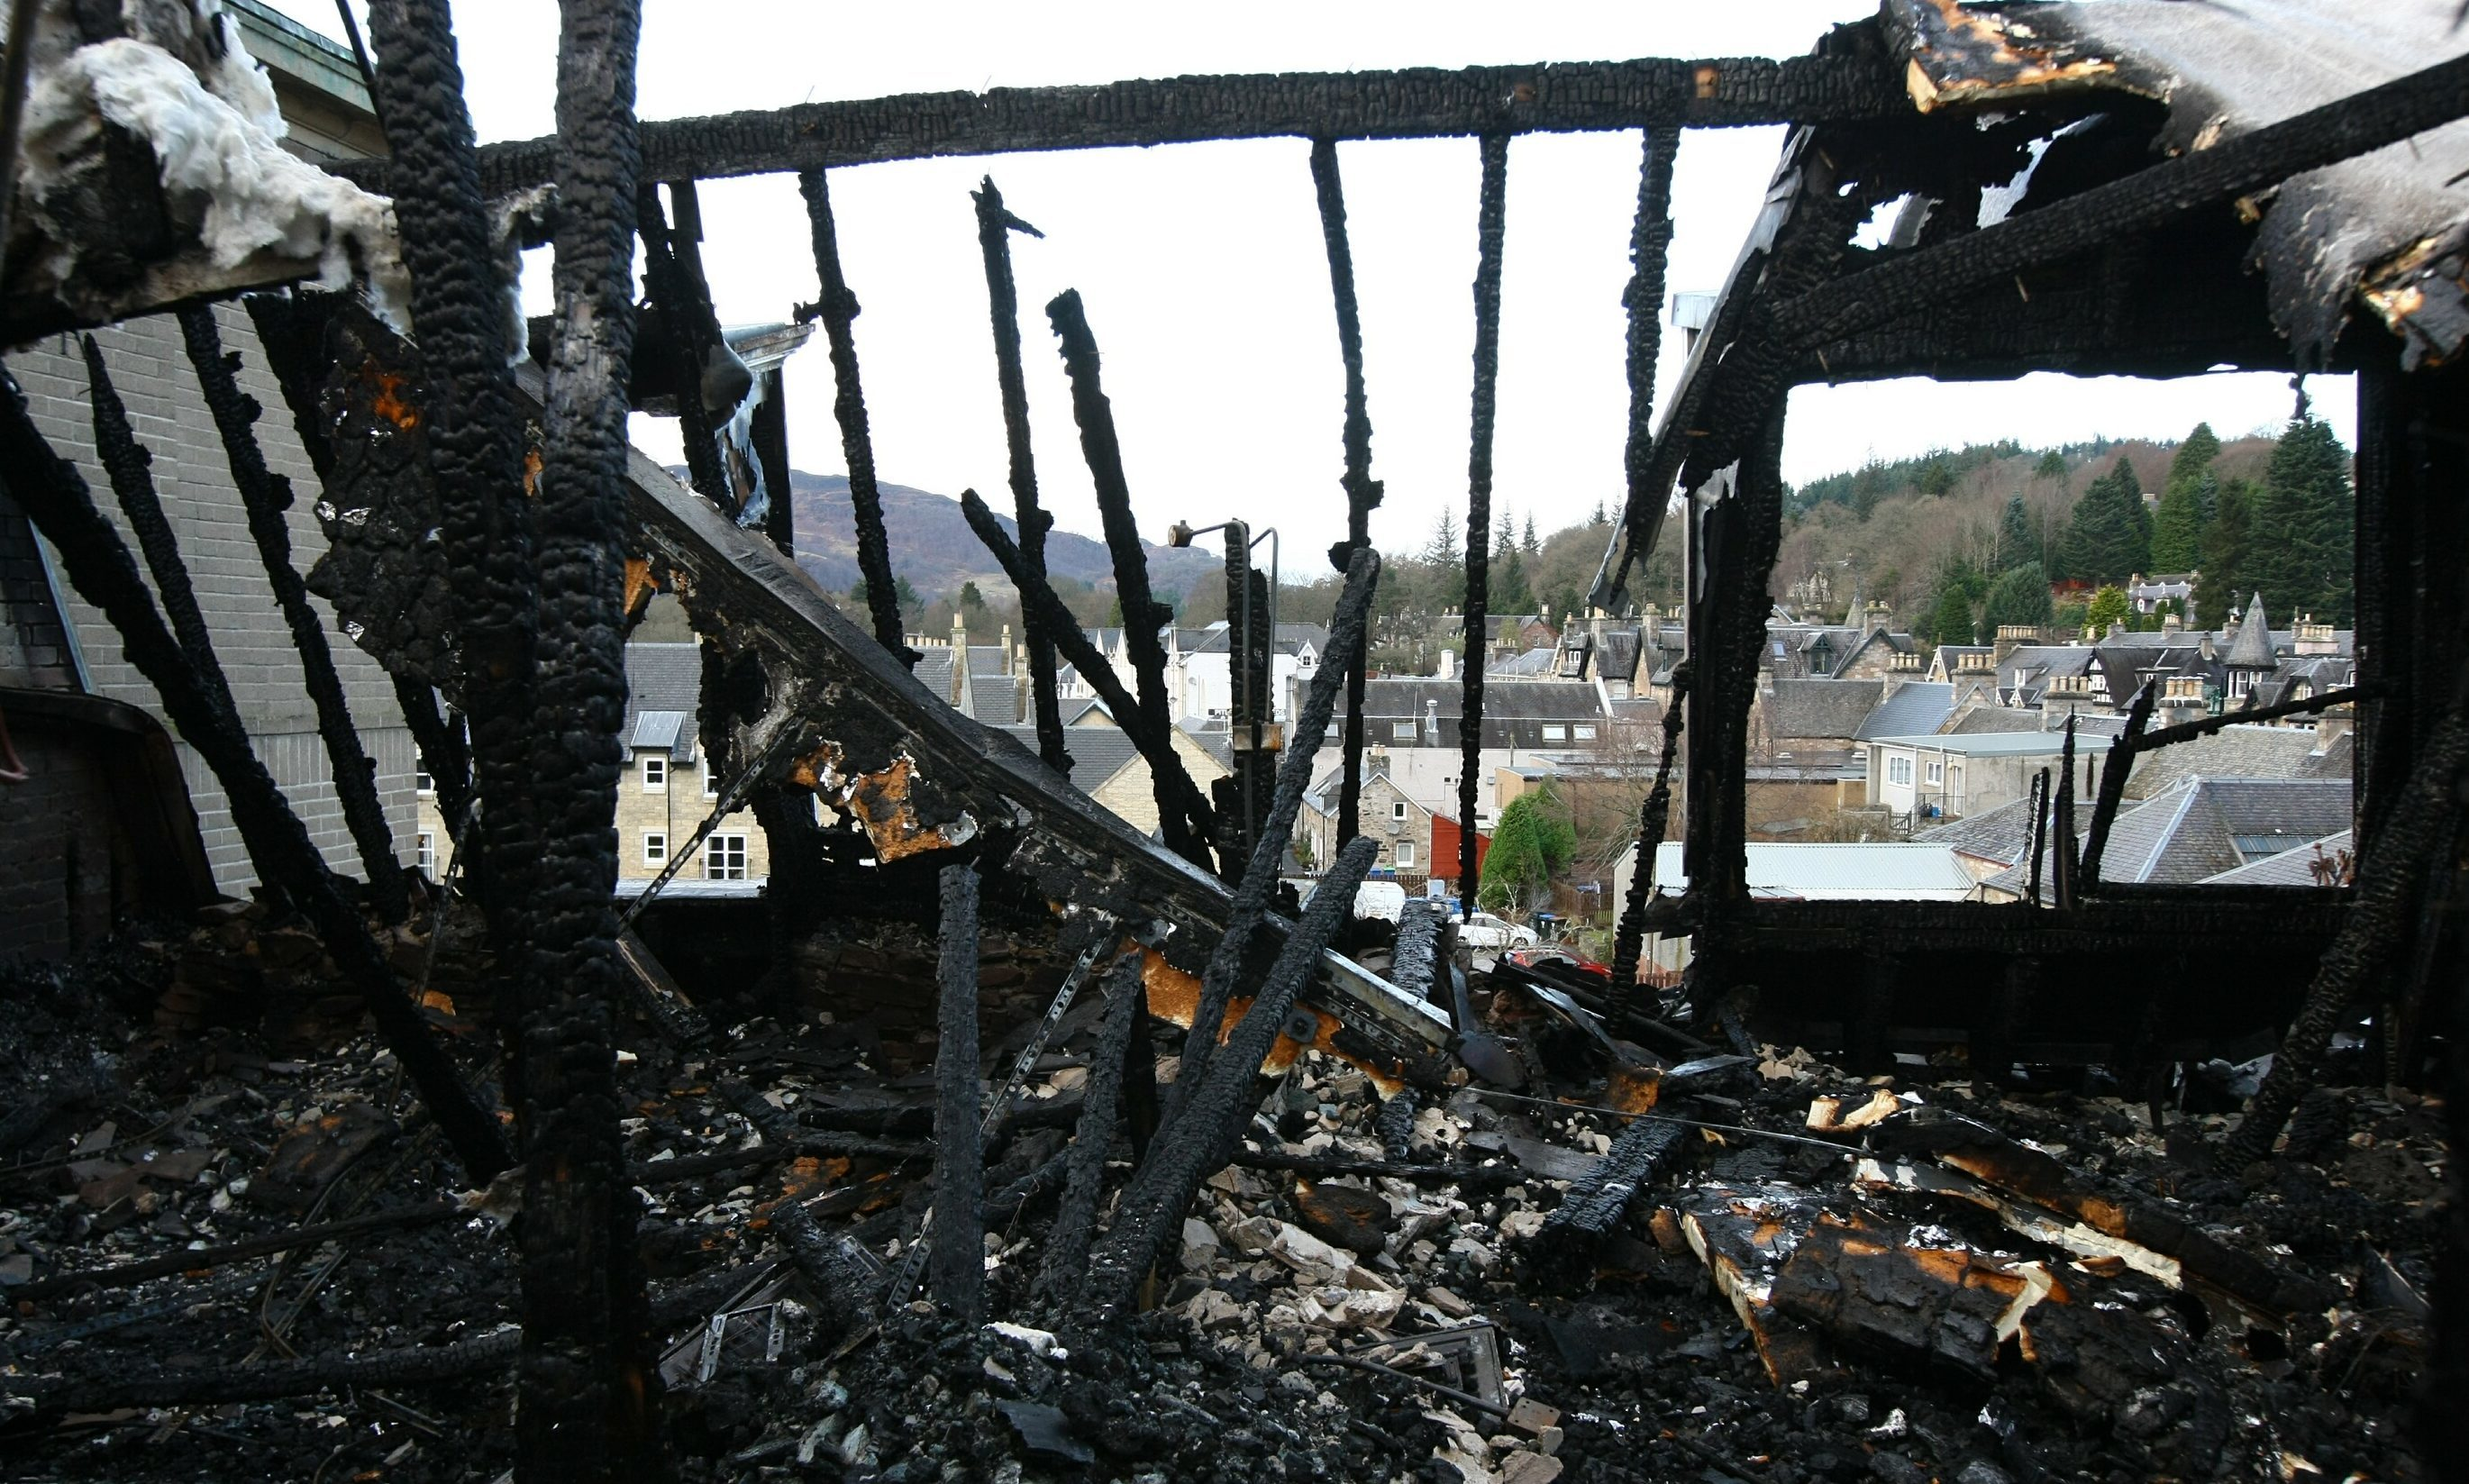 The aftermath of Fisher's New Year's Day fire